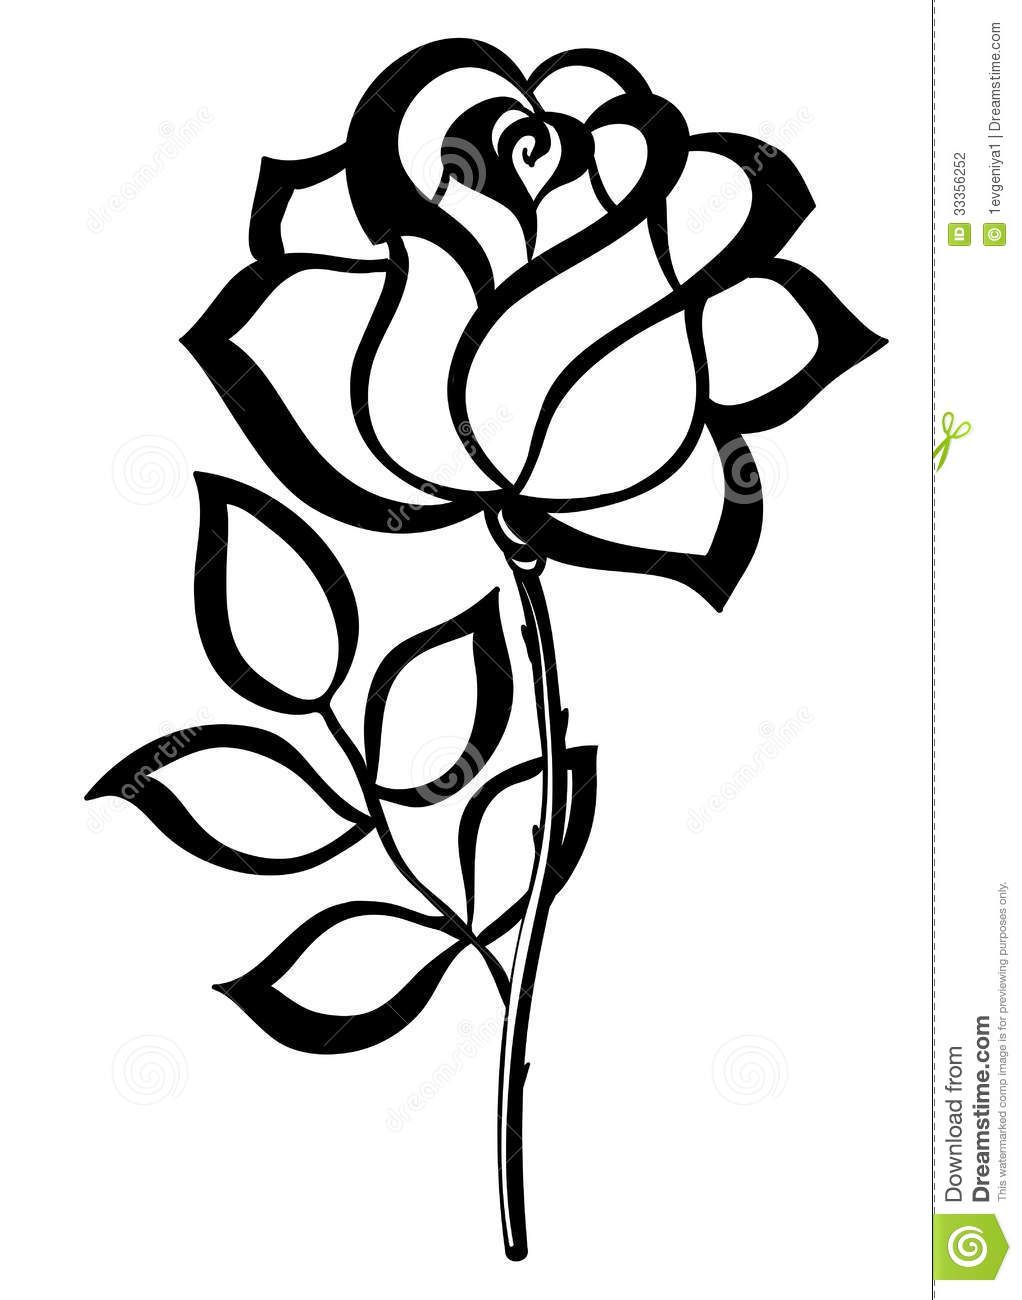 1022x1300 Simple Rose Outline Simple Single Rose Outline Black Silhouette